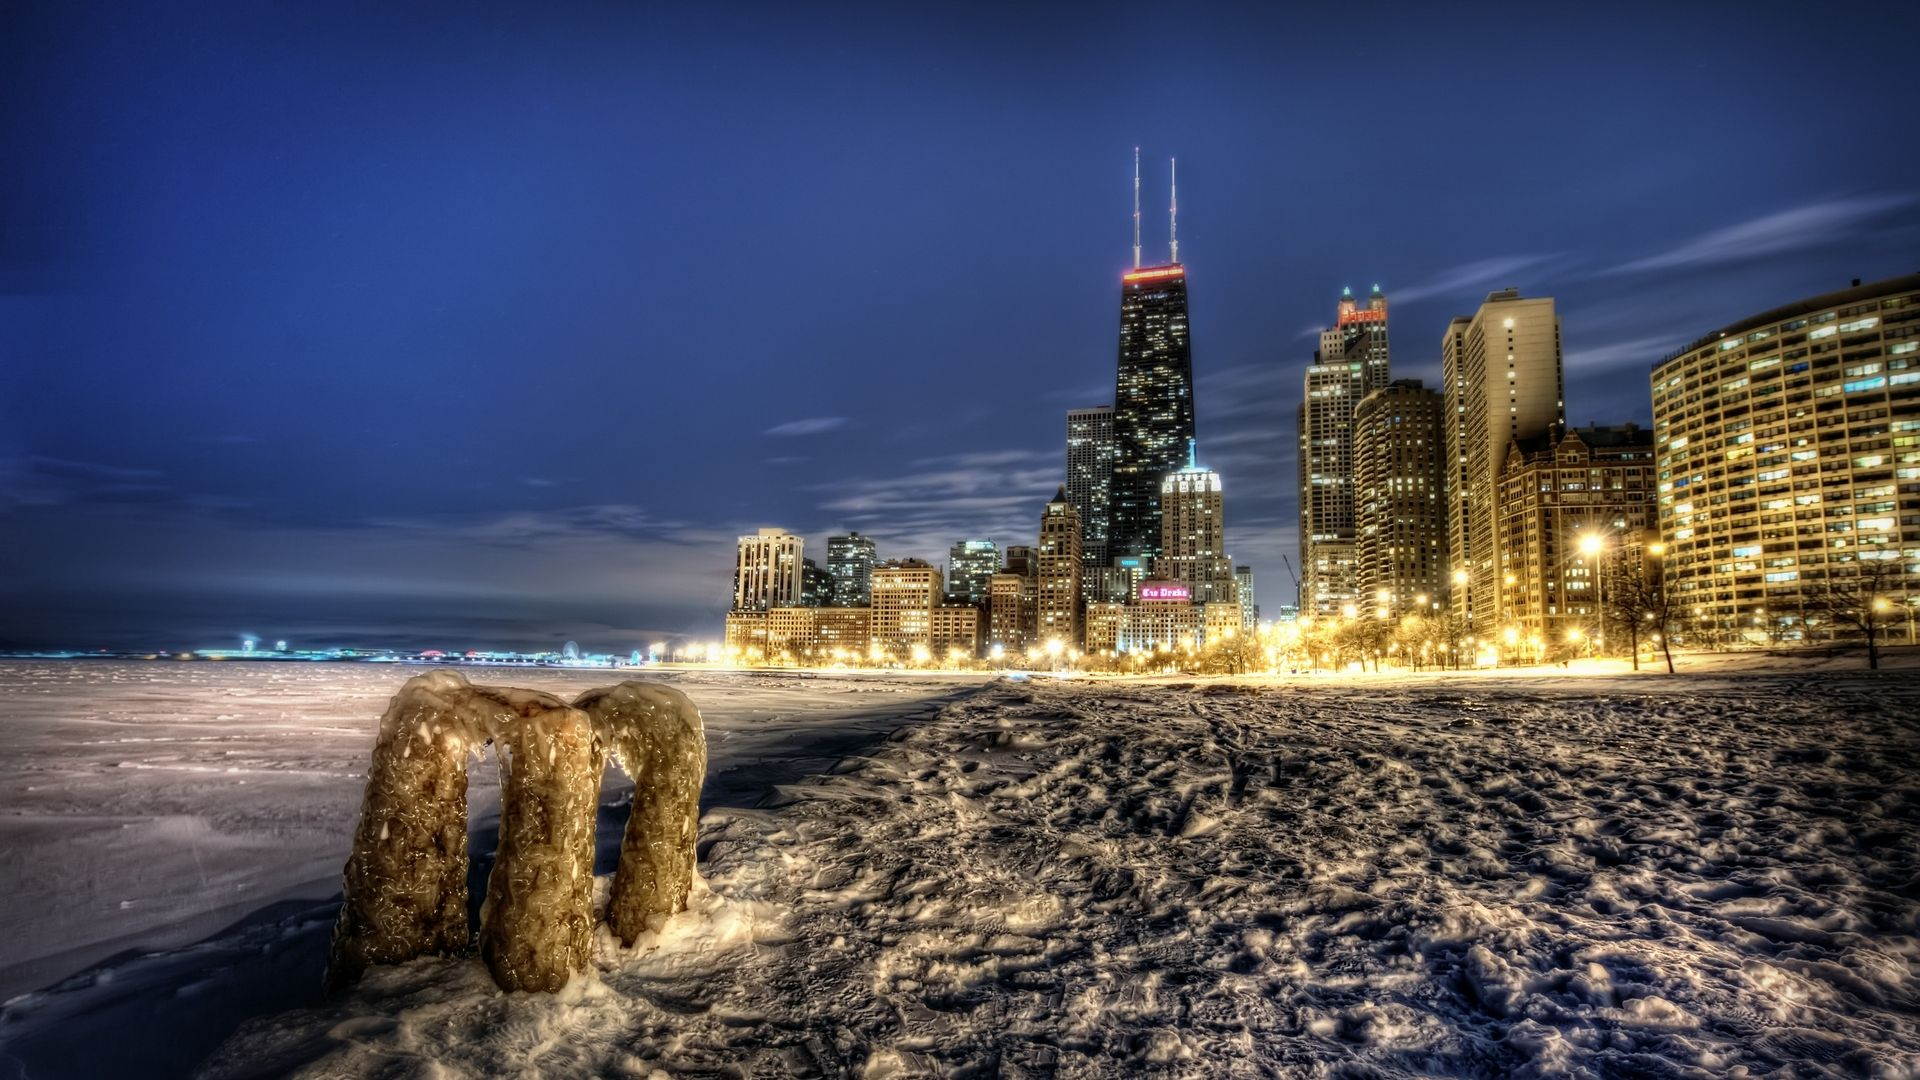 Amazing Wallpaper Night Chicago - 5c5aba25342ef82a3f1cad3bd8834e6d  Gallery.jpg